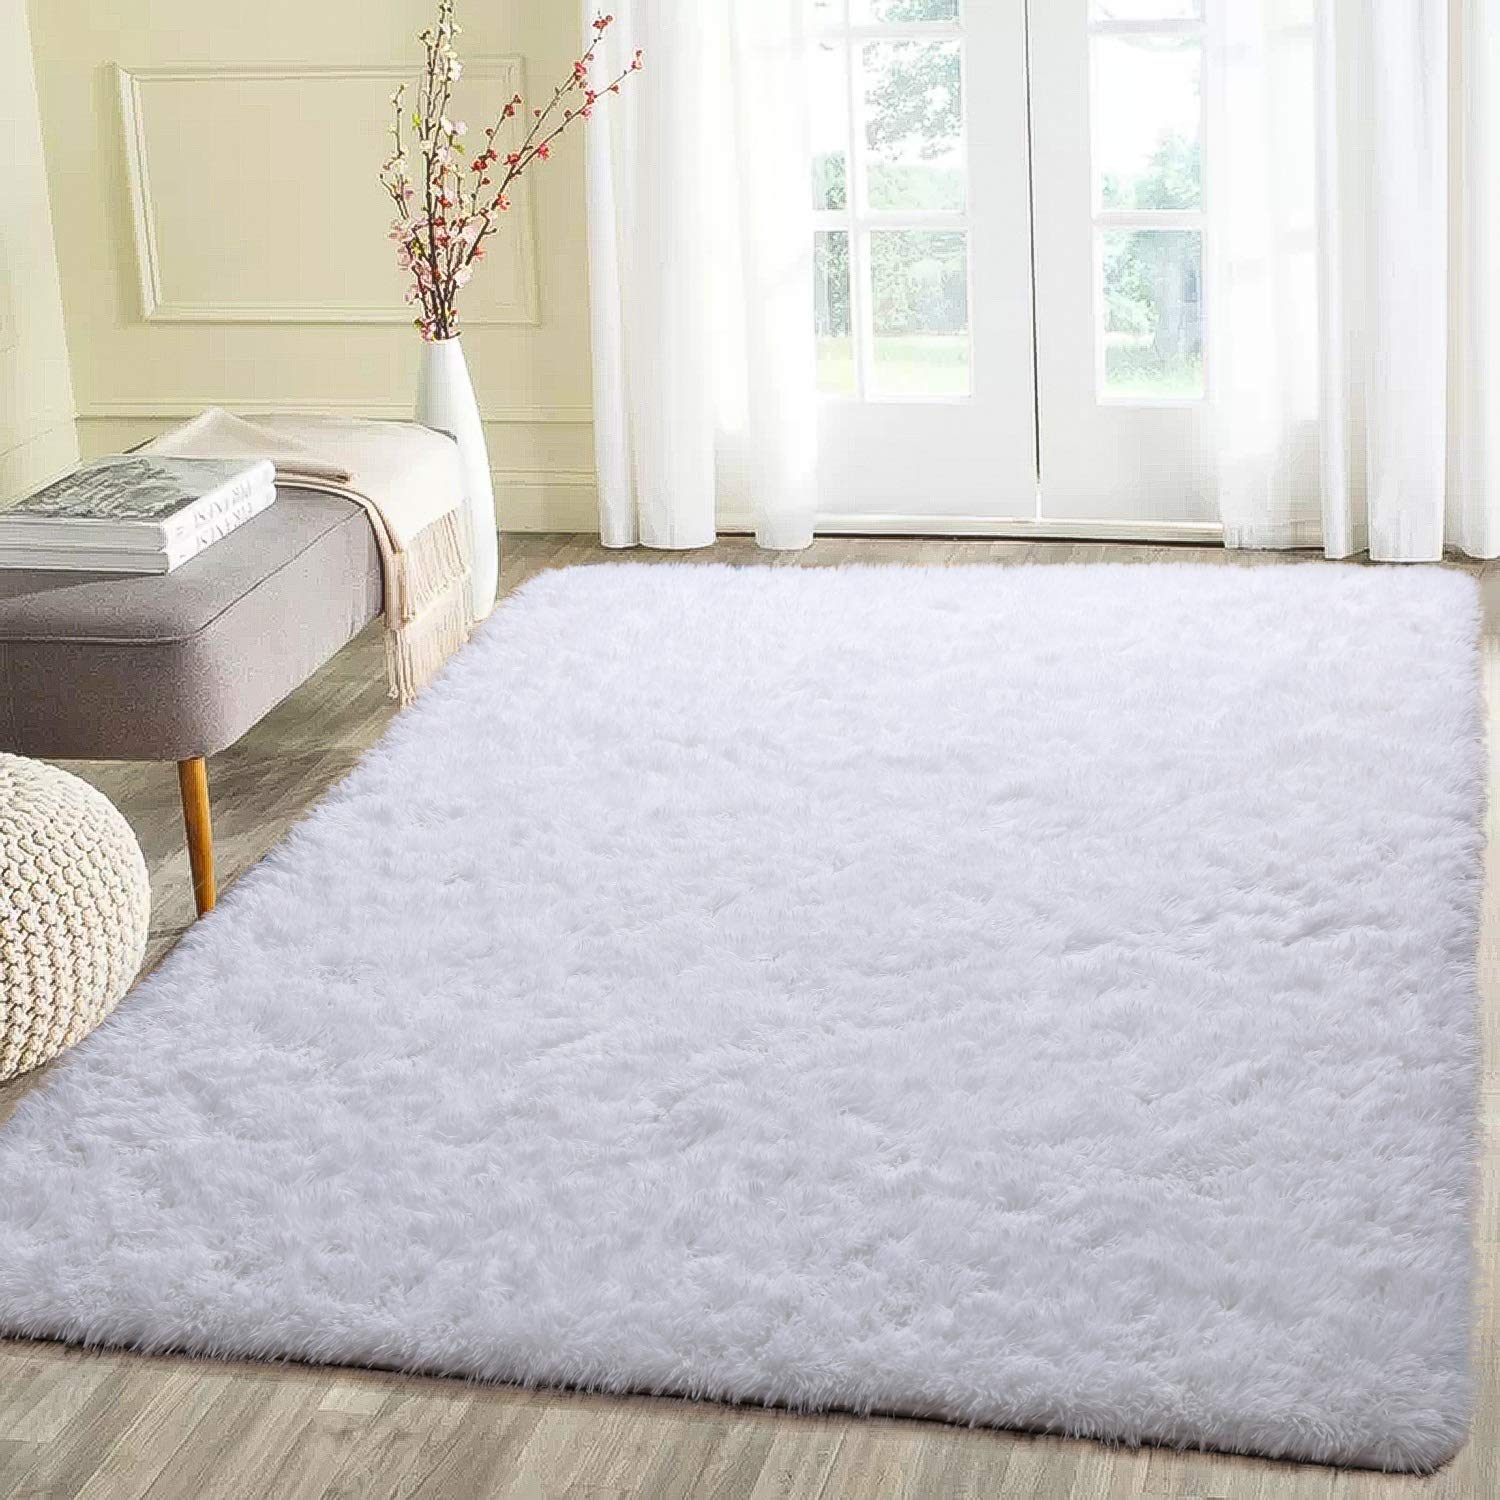 Amazon Com Beglad 5 3 Ft X 7 5 Ft Soft Fluffy Area Rug Modern Shaggy Bedroom Rugs For Kids Room Extra Comfy Nursery Rug Floor Carpets Boys Girls Fuzzy Shag Fur Home Decor Rug